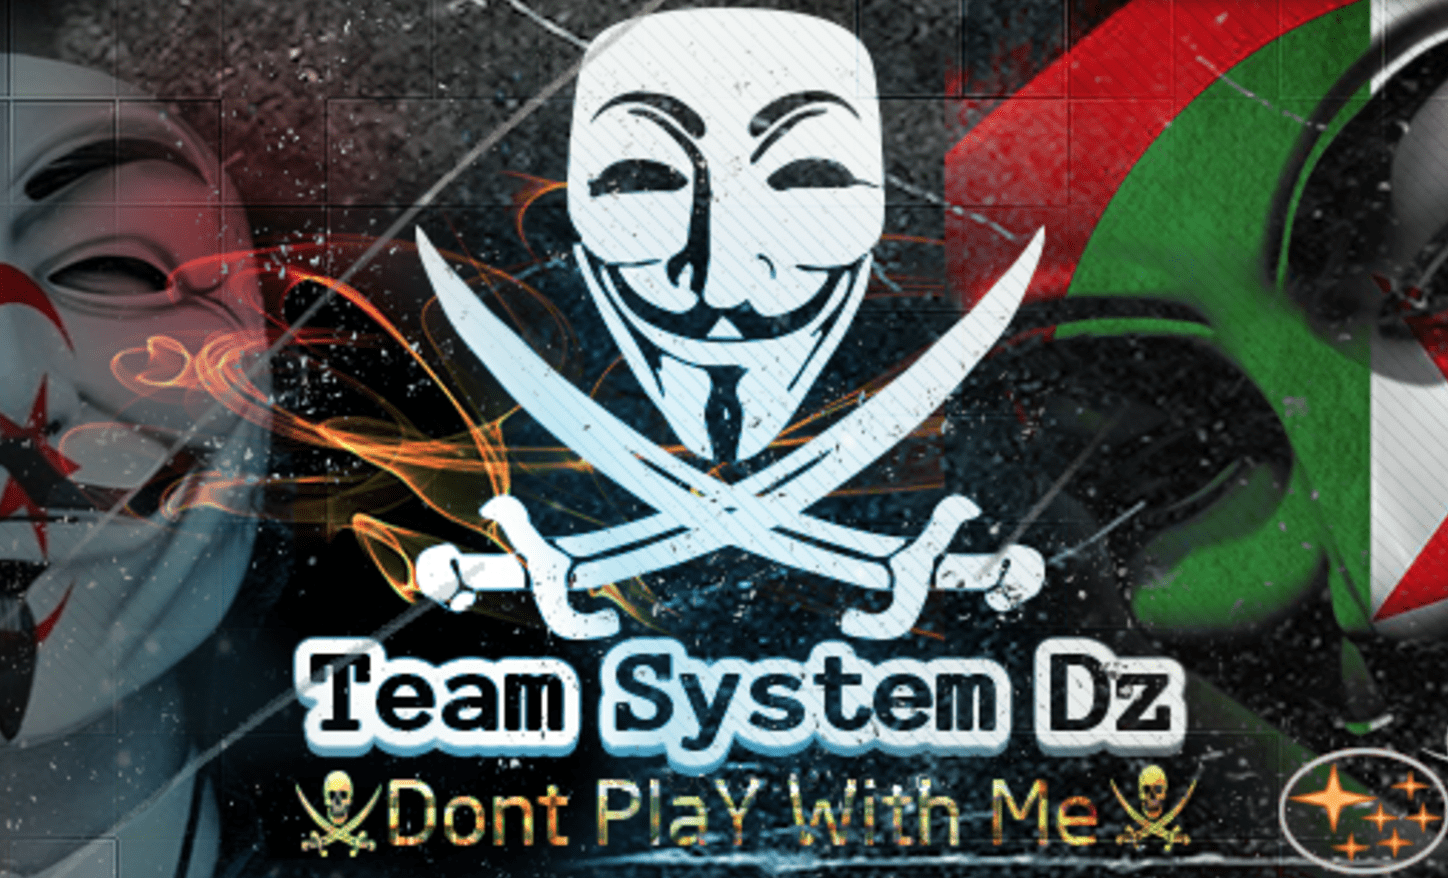 Marine and Safety Tasmanian Government Website Hacked by Algerian Hackers